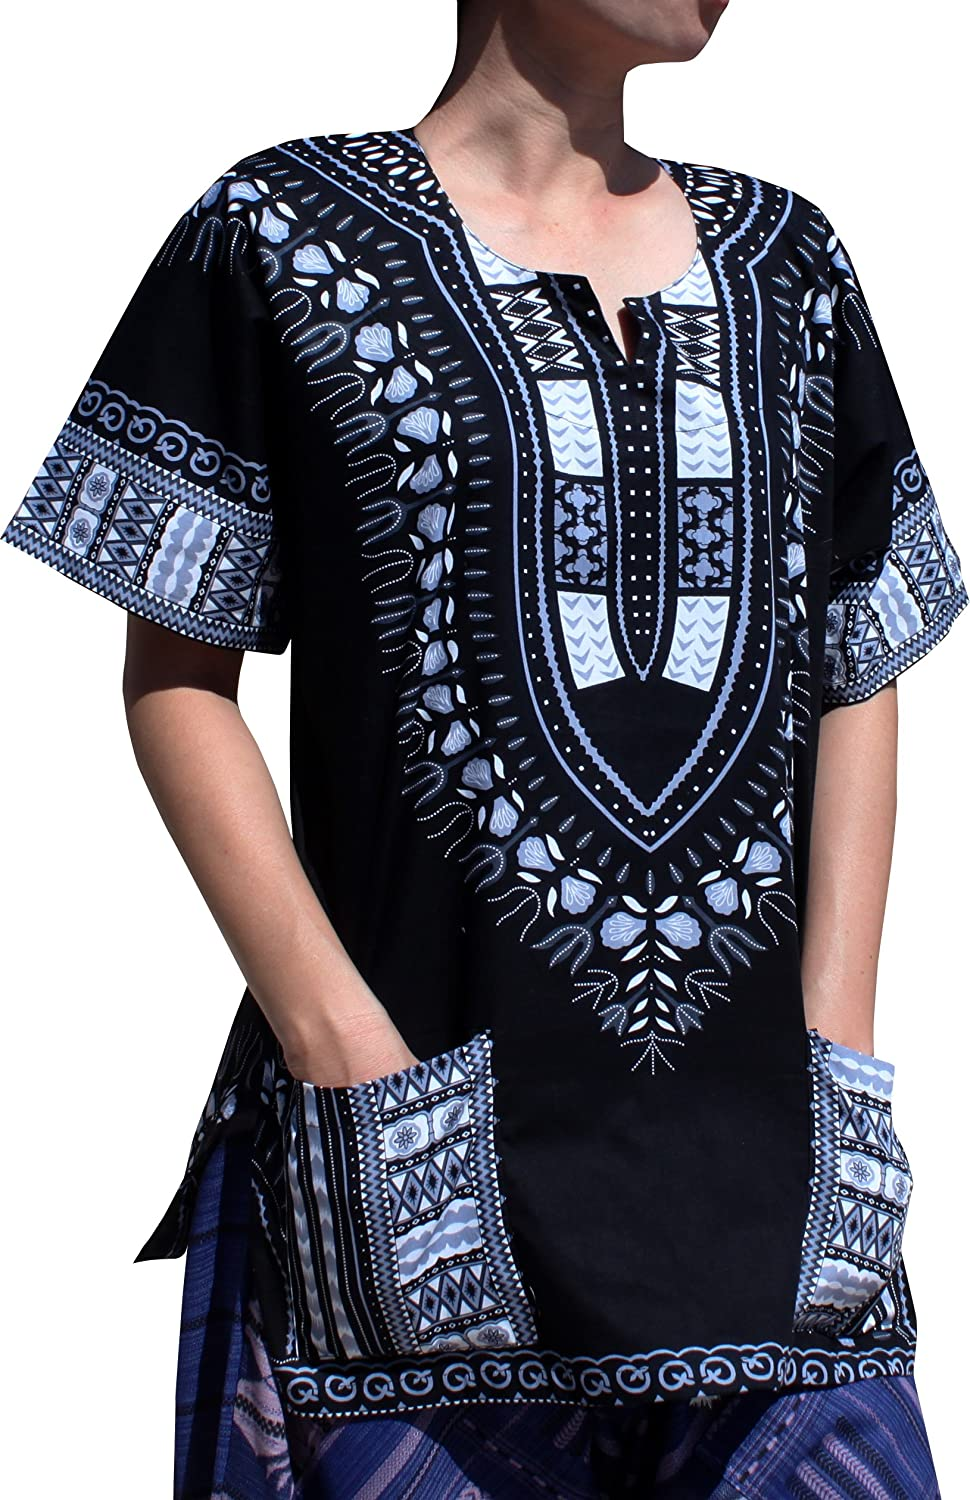 64179ec9bc RaanPahMuang quality hand made Fair Trade Thai clothing brand. Bright bold African  Dashiki print. Large open collar